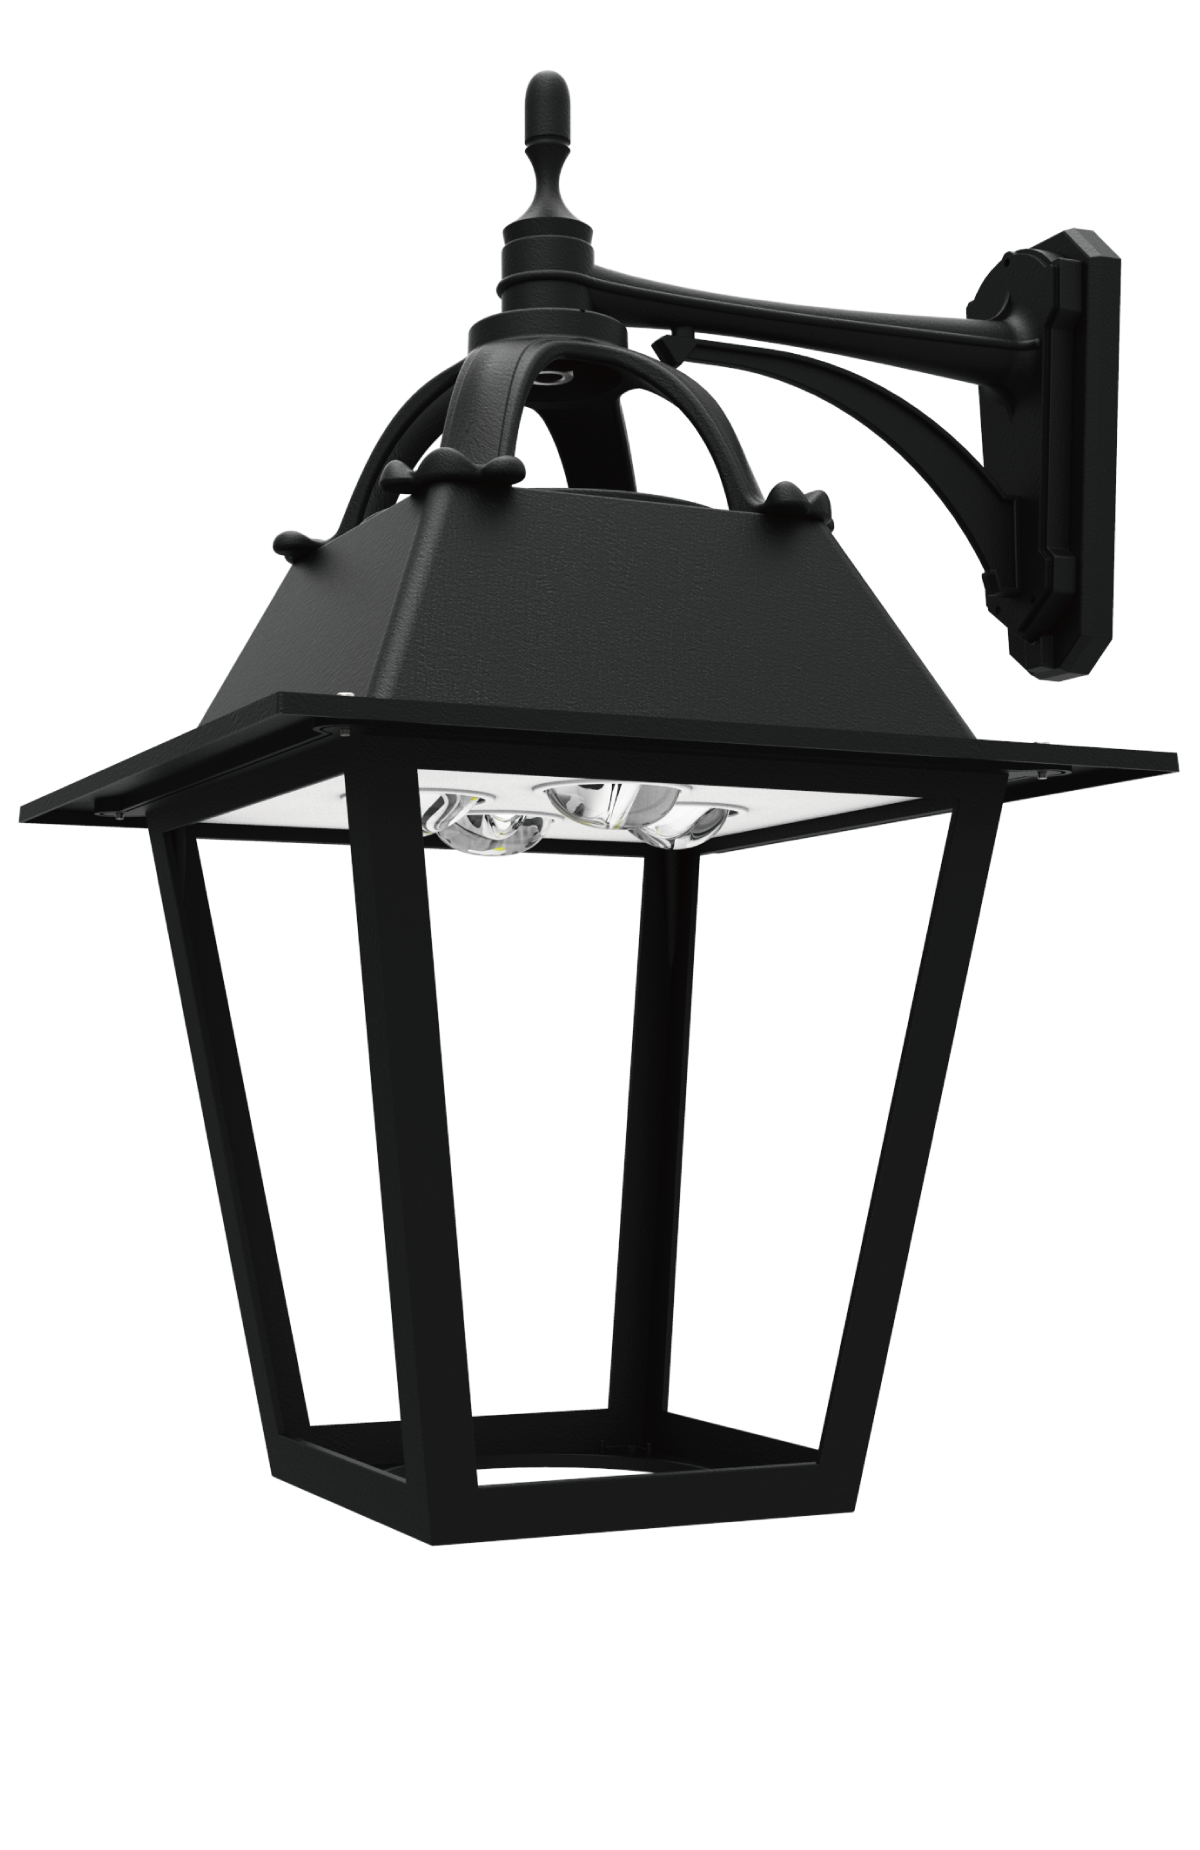 Led pt 713 series led post top lantern light fixtures Popular light fixtures 2017